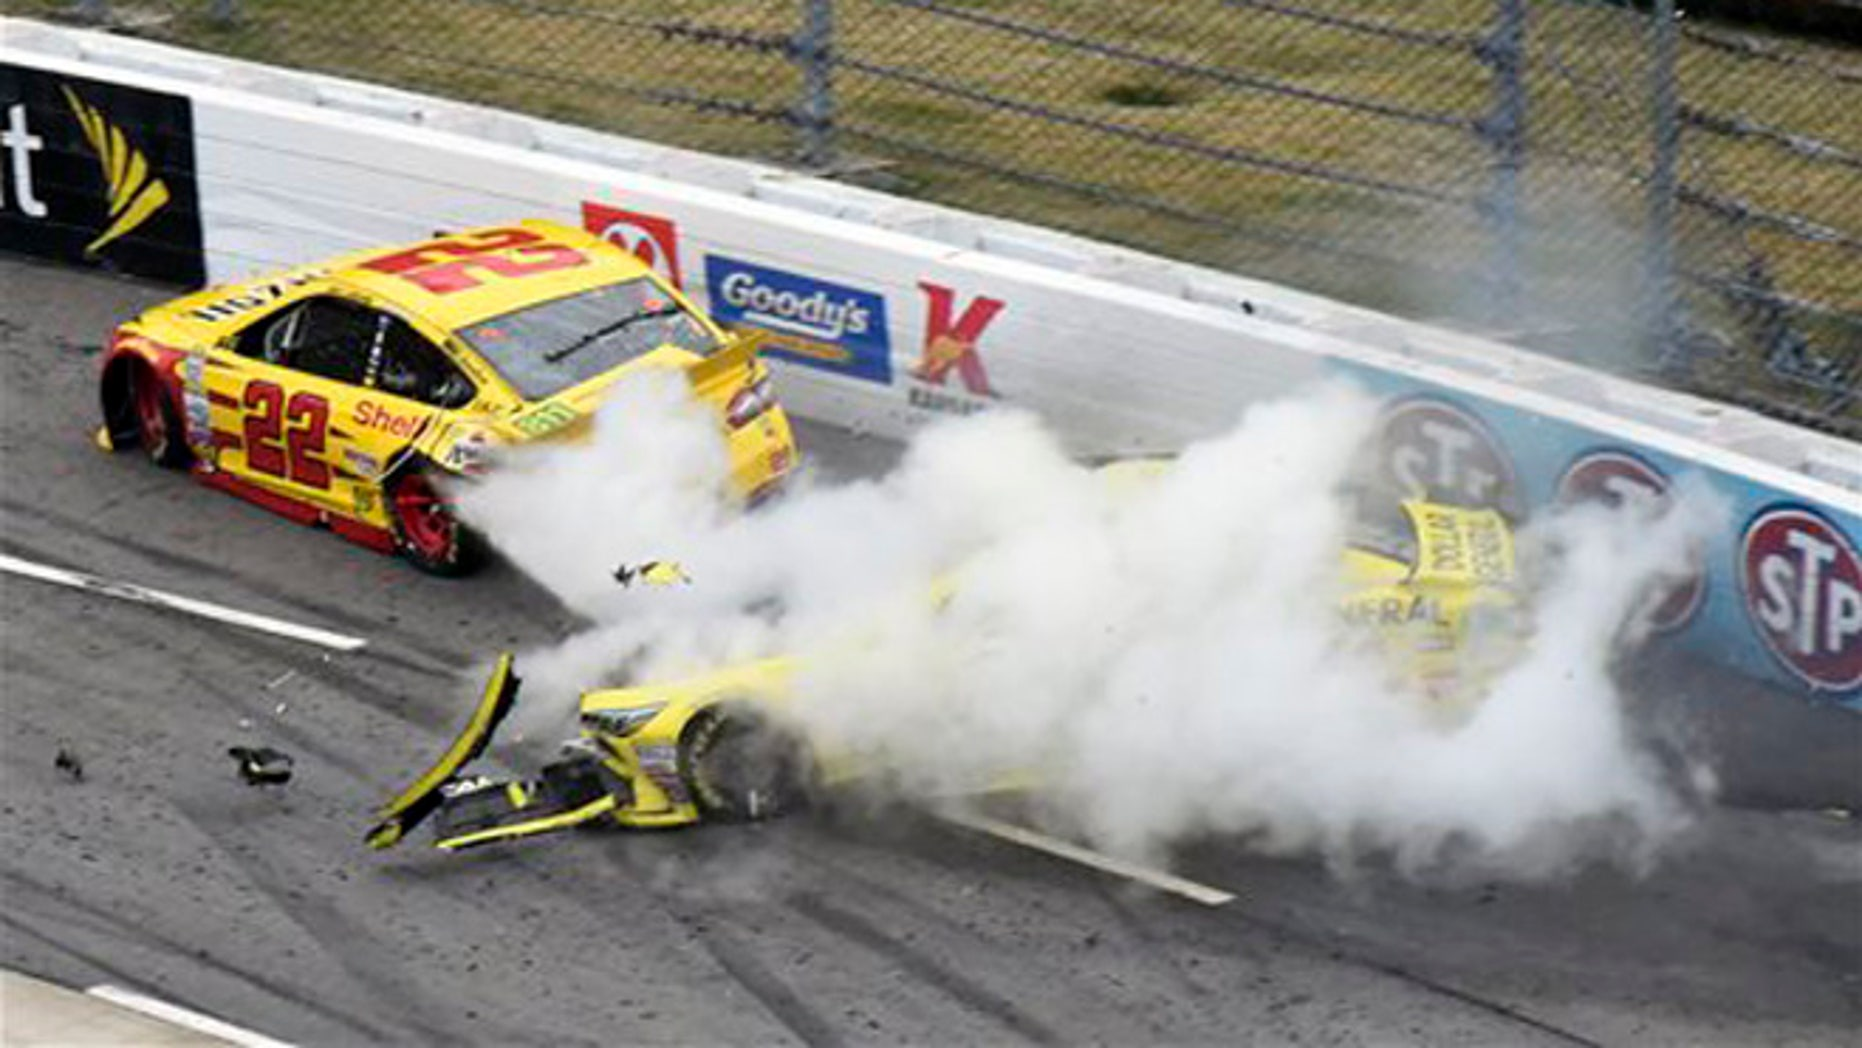 Joey Logano (22) and Matt Kenseth (20) tangle in Turn 1 during the NASCAR Sprint Cup Series auto race at Martinsville Speedway in Martinsville, Va., Sunday, Nov. 1, 2015. (AP Photo/Don Petersen)